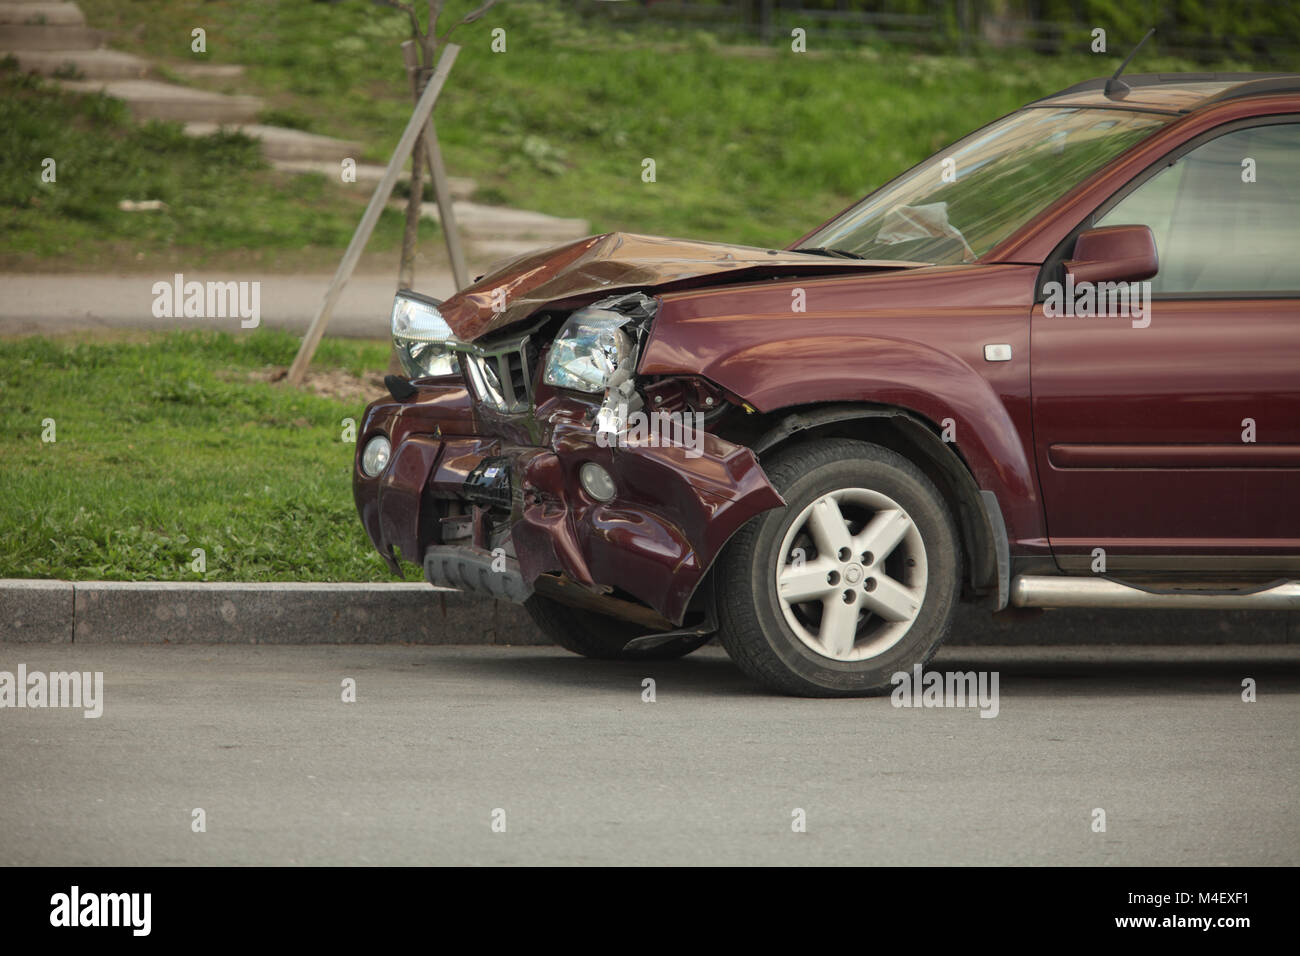 Car crash after a head-on collision - Stock Image